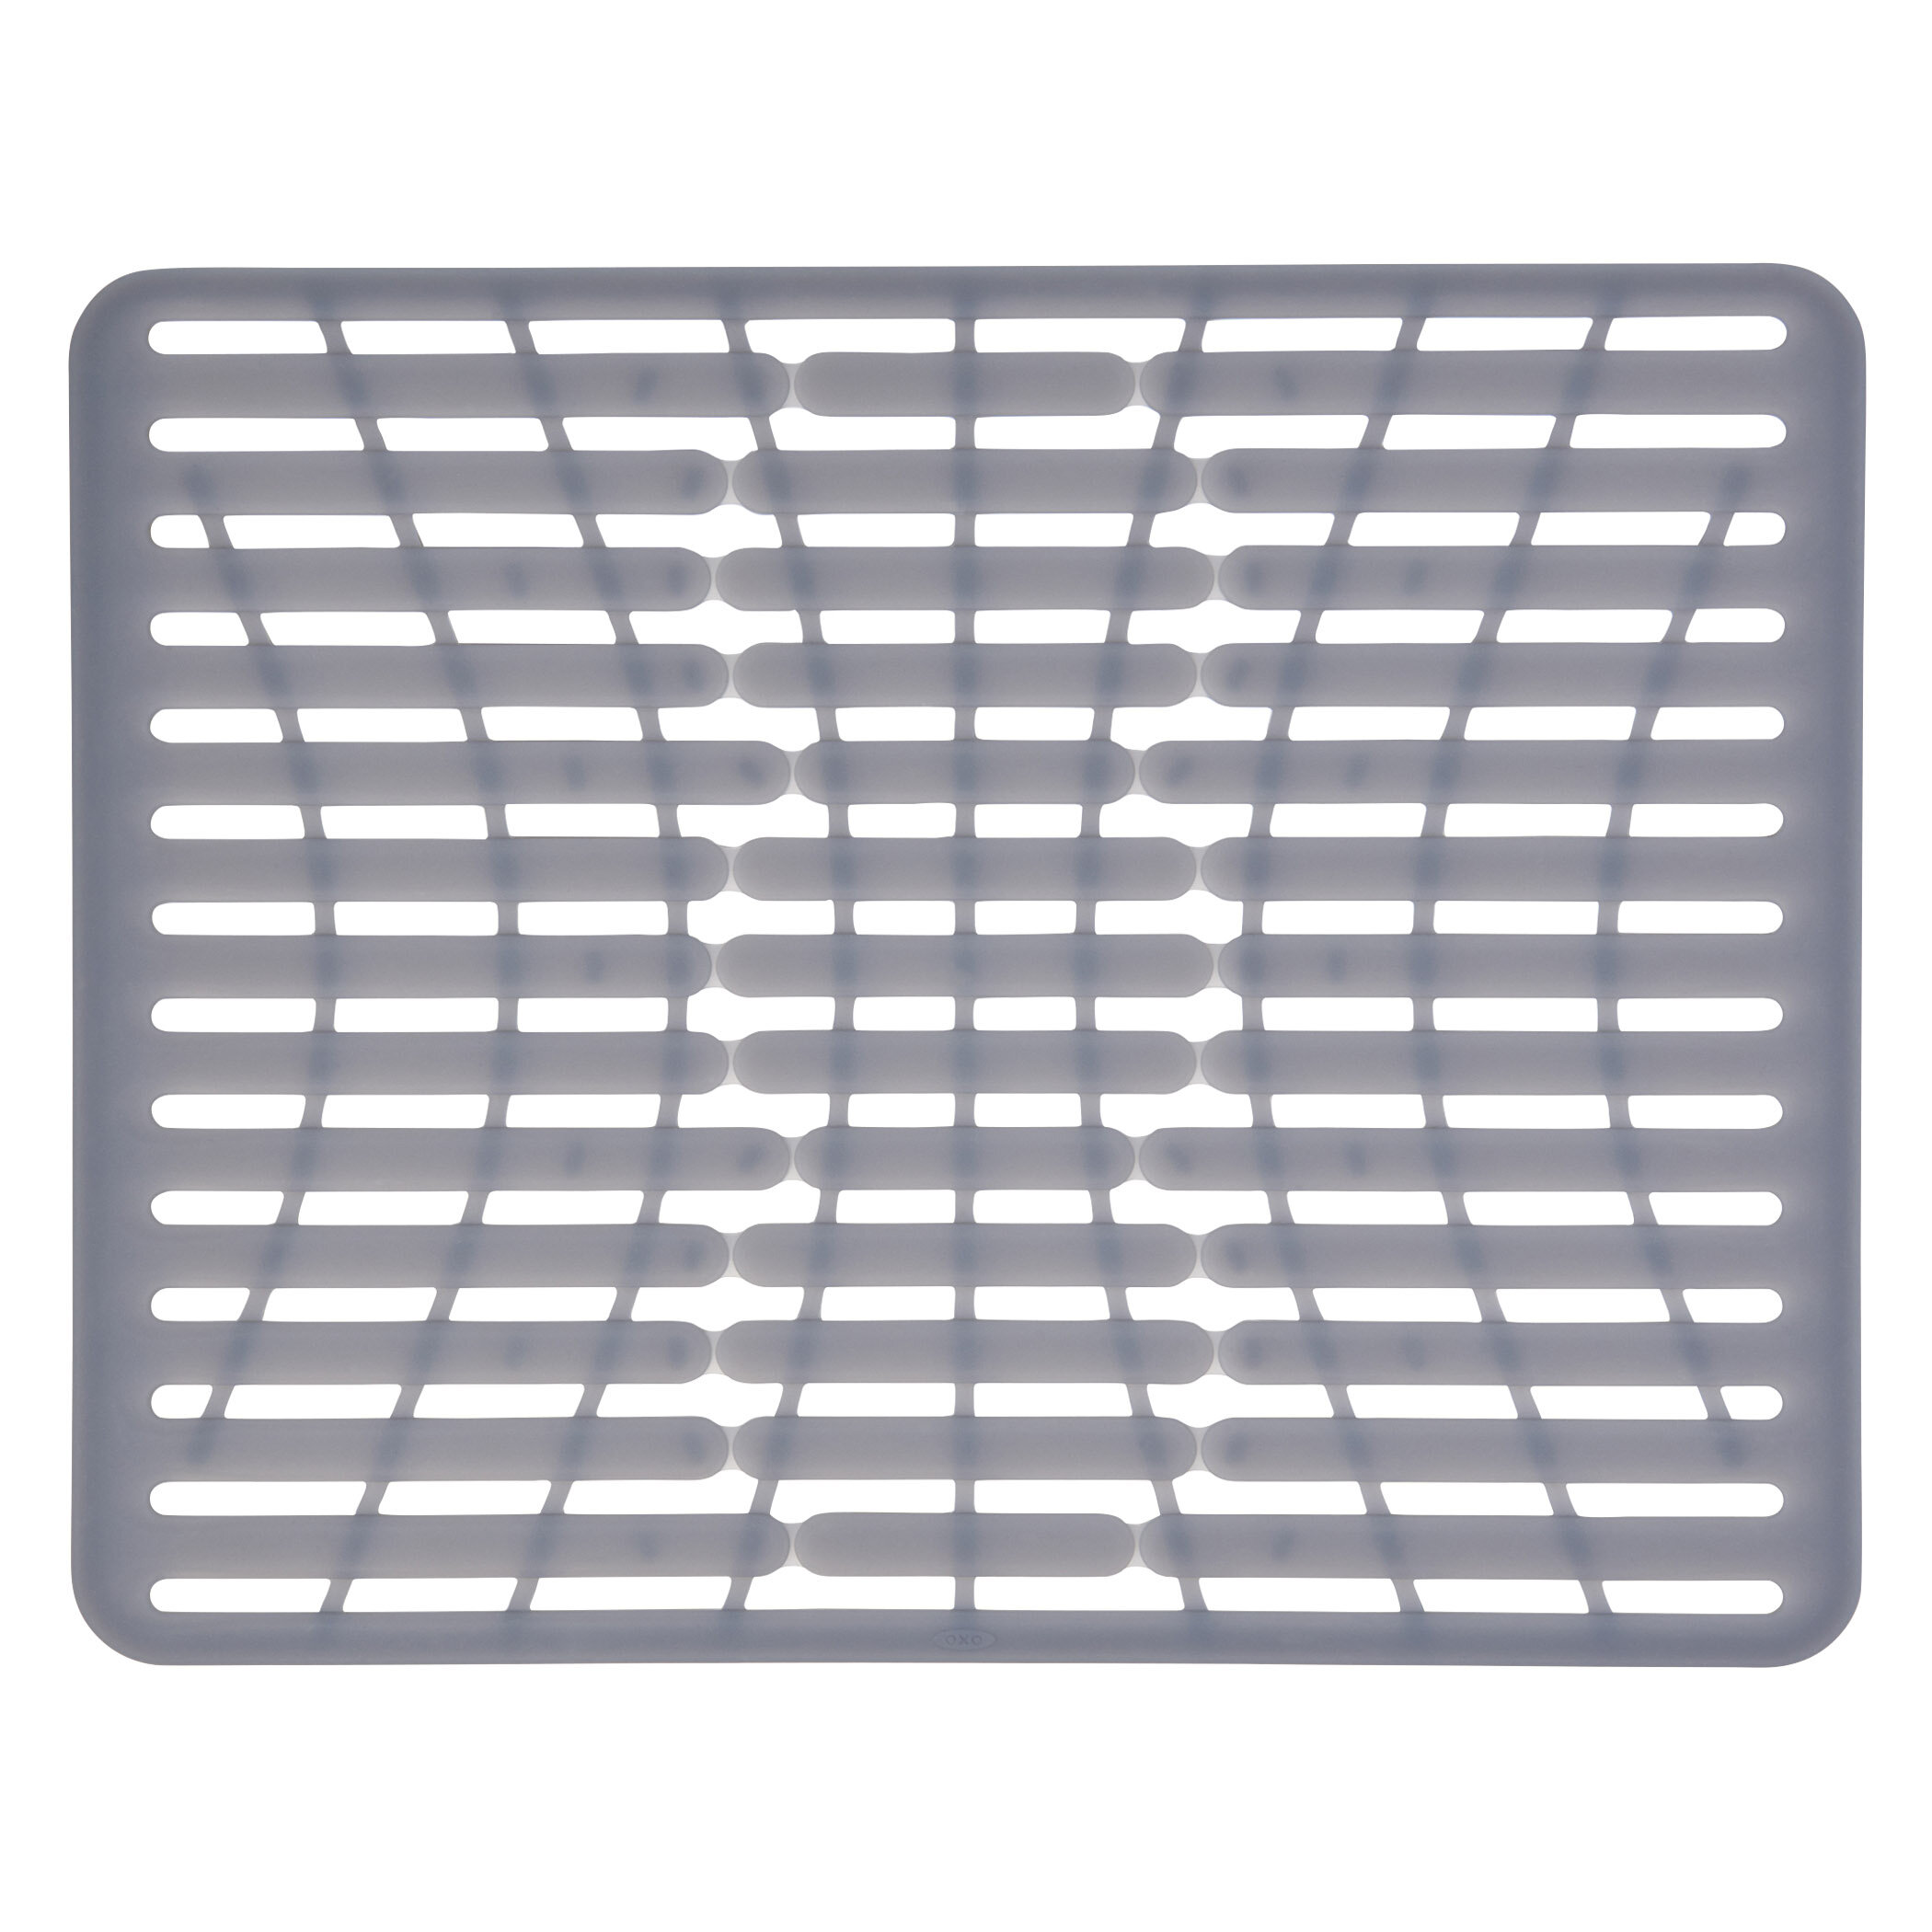 mats h image mat oxo kitchen of luxury large racks rack download fresh new good com amazon dish sink grips protector best xbegl